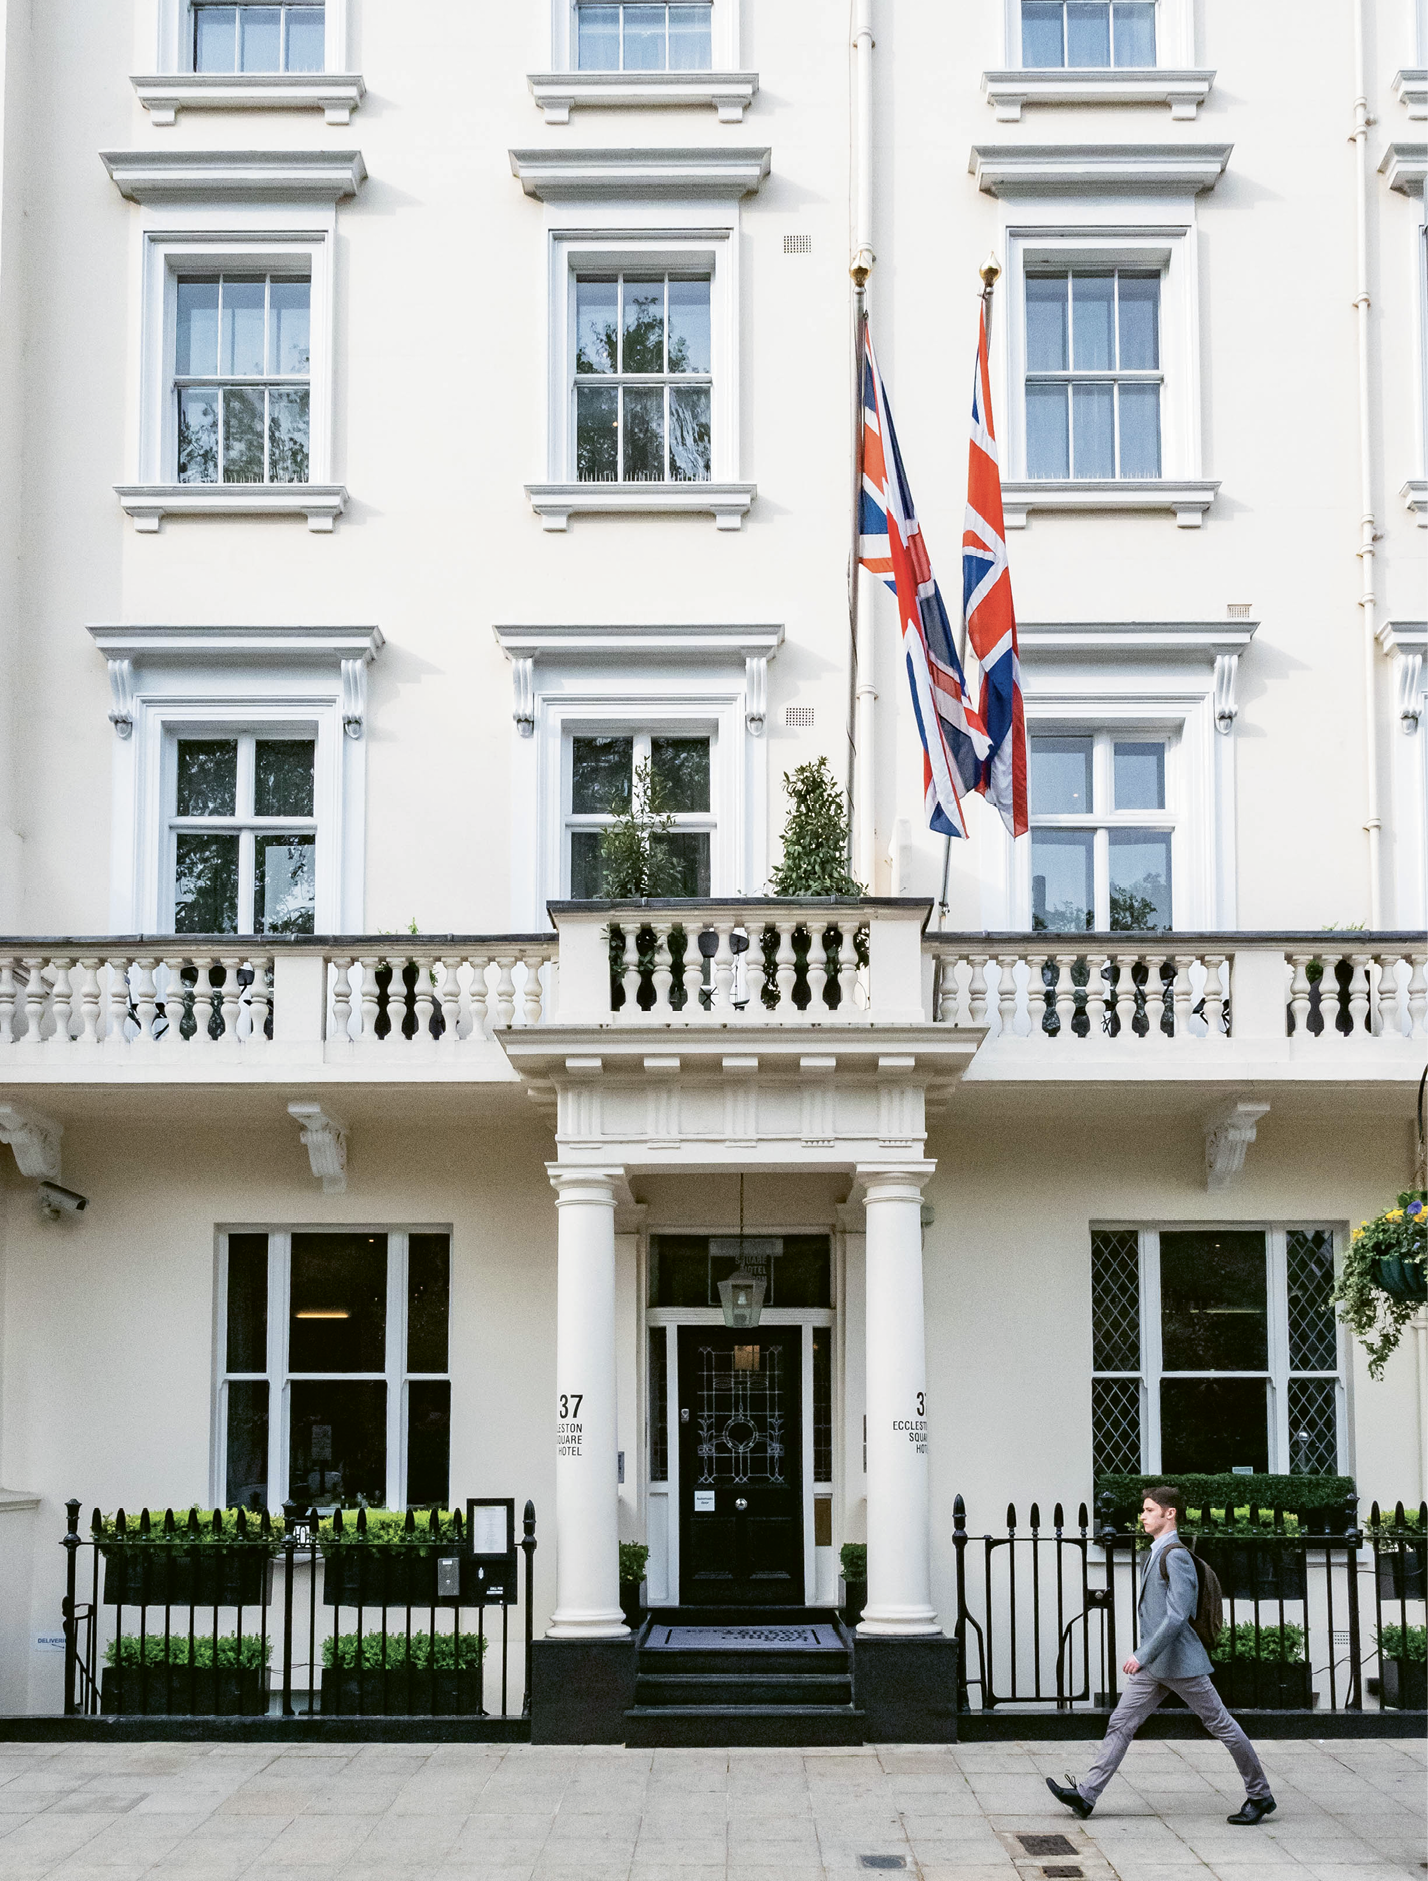 Eccleston Square Hotel is on a quiet side street a few blocks from the trains and buses at Victoria Station.